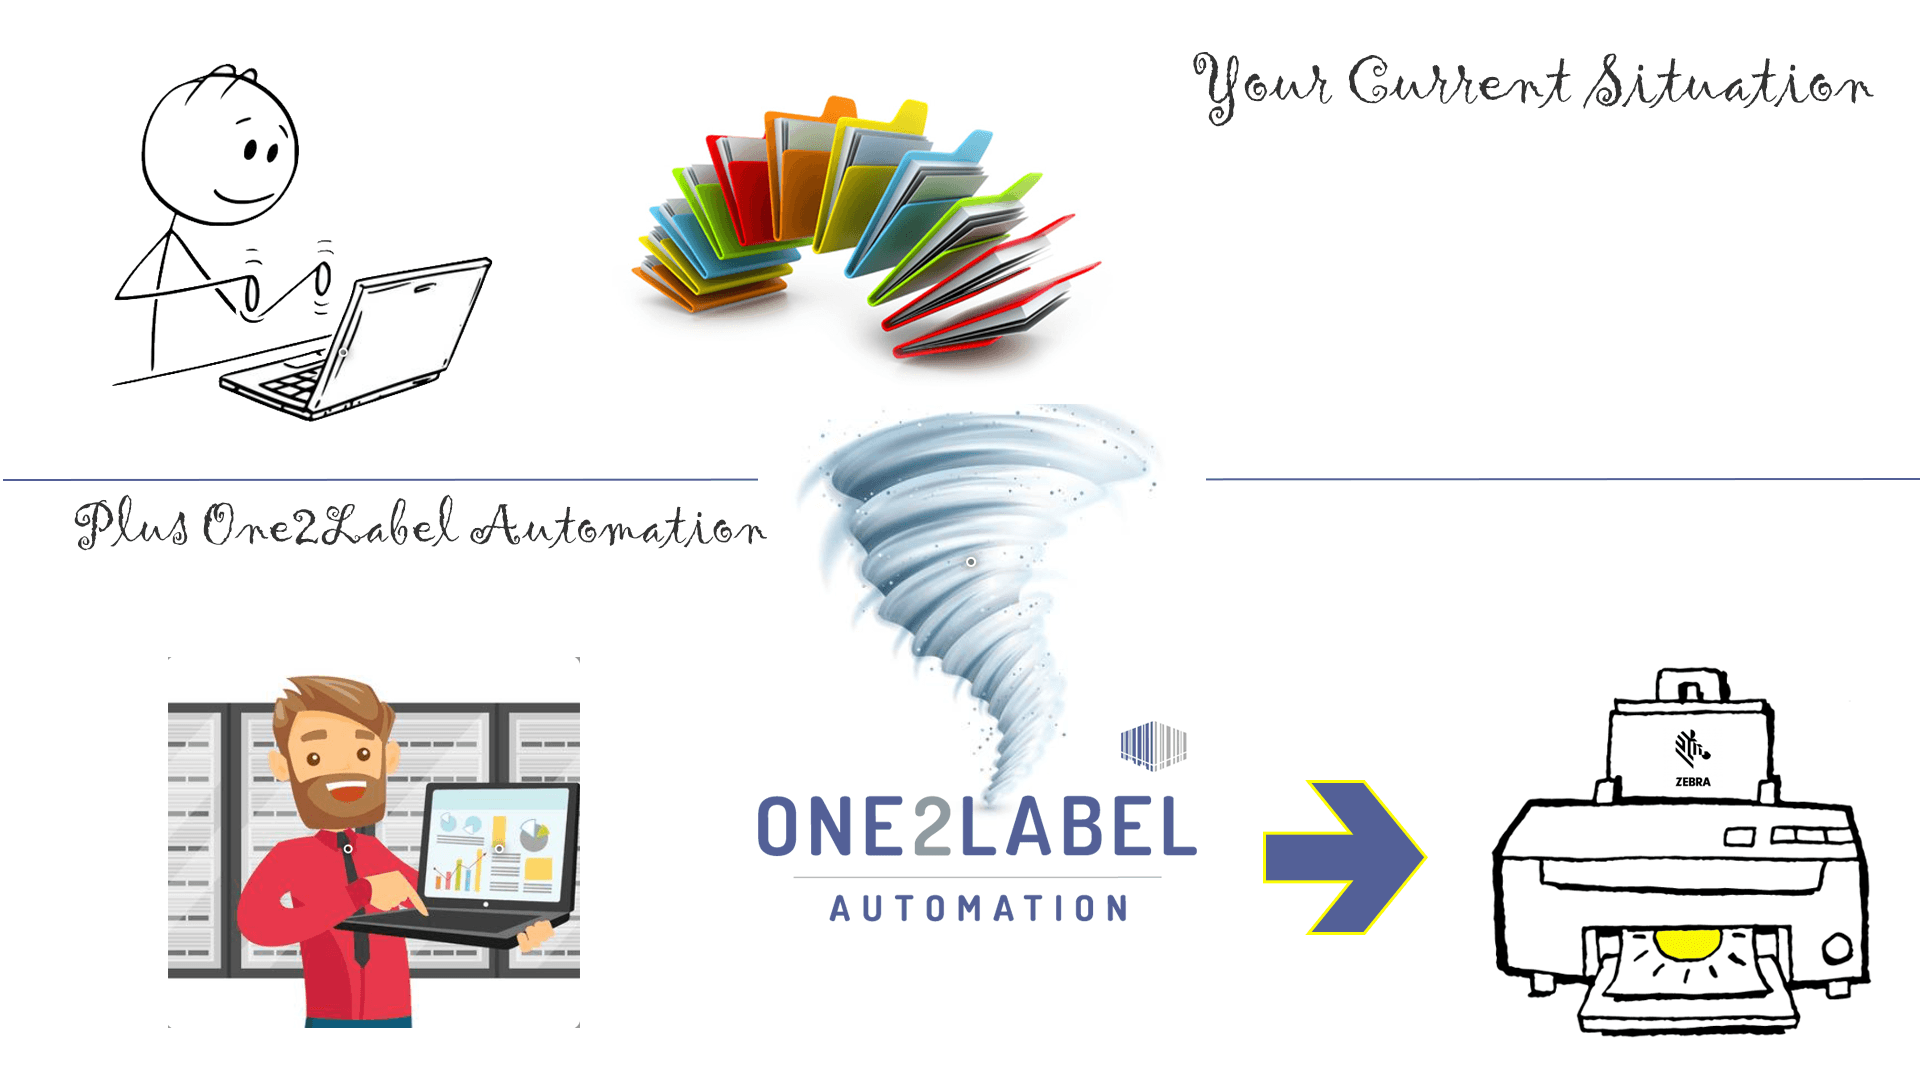 One2Label Automation